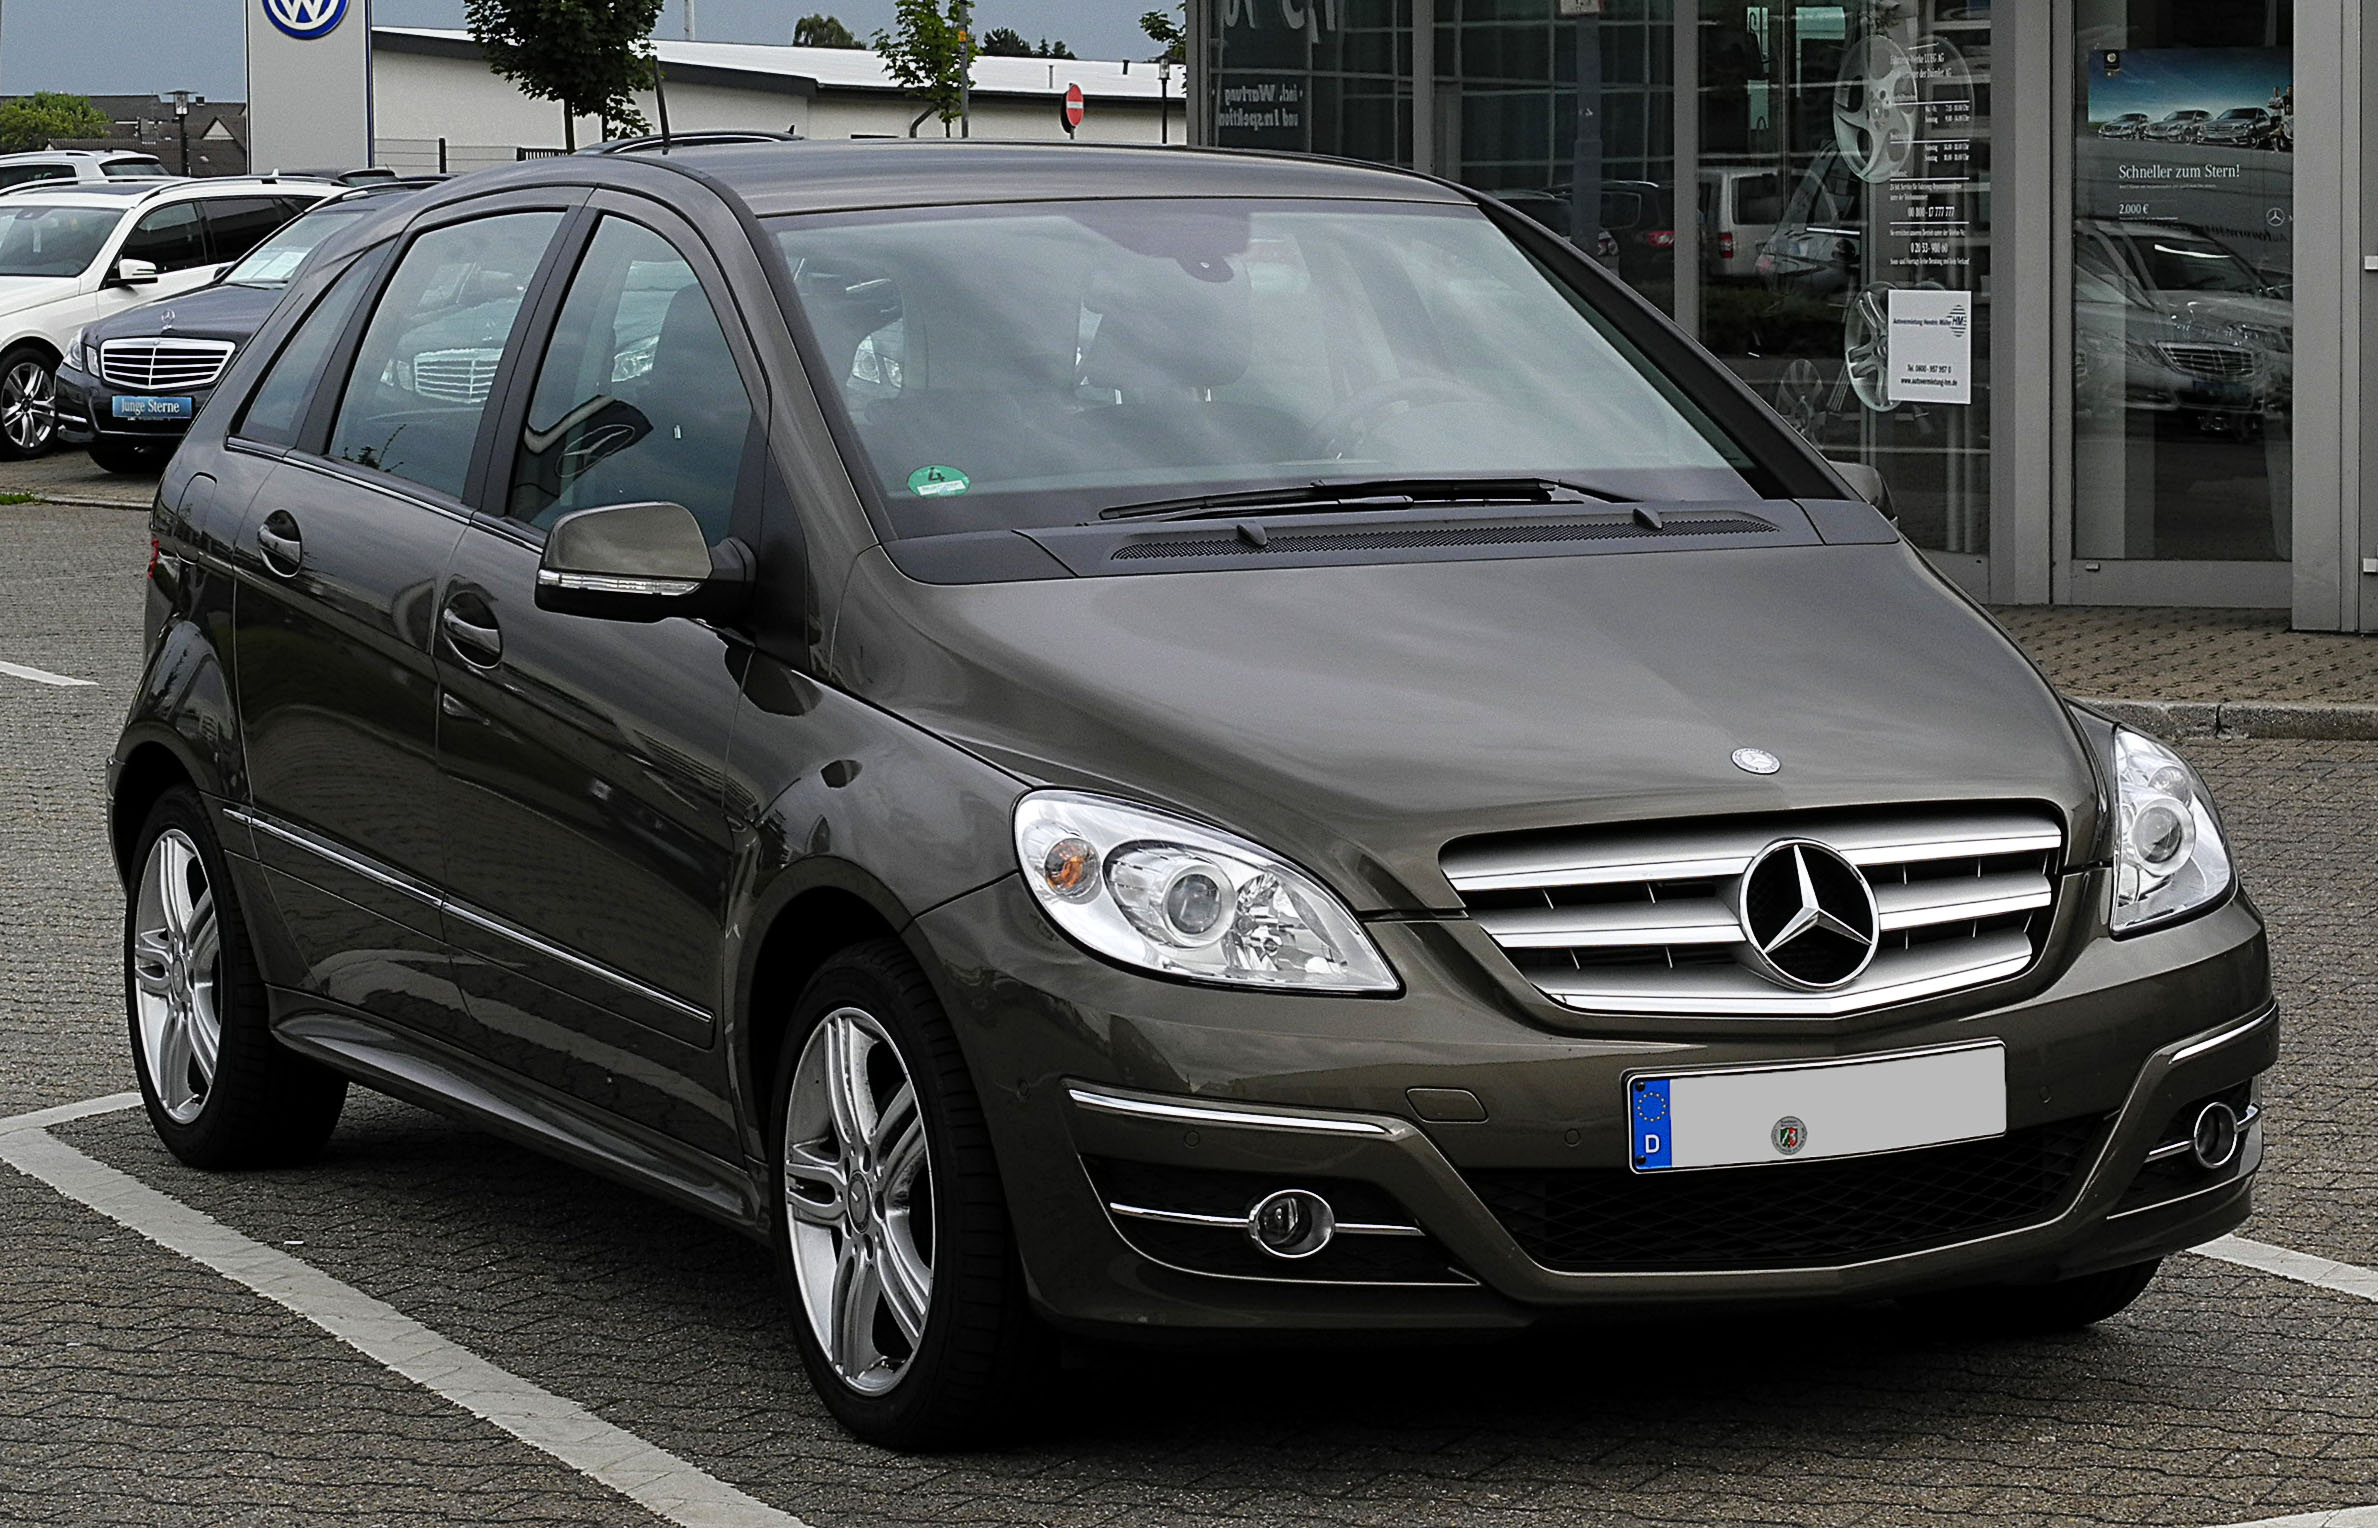 datei mercedes benz b 180 cdi t 245 facelift frontansicht 1 10 juni 2011. Black Bedroom Furniture Sets. Home Design Ideas